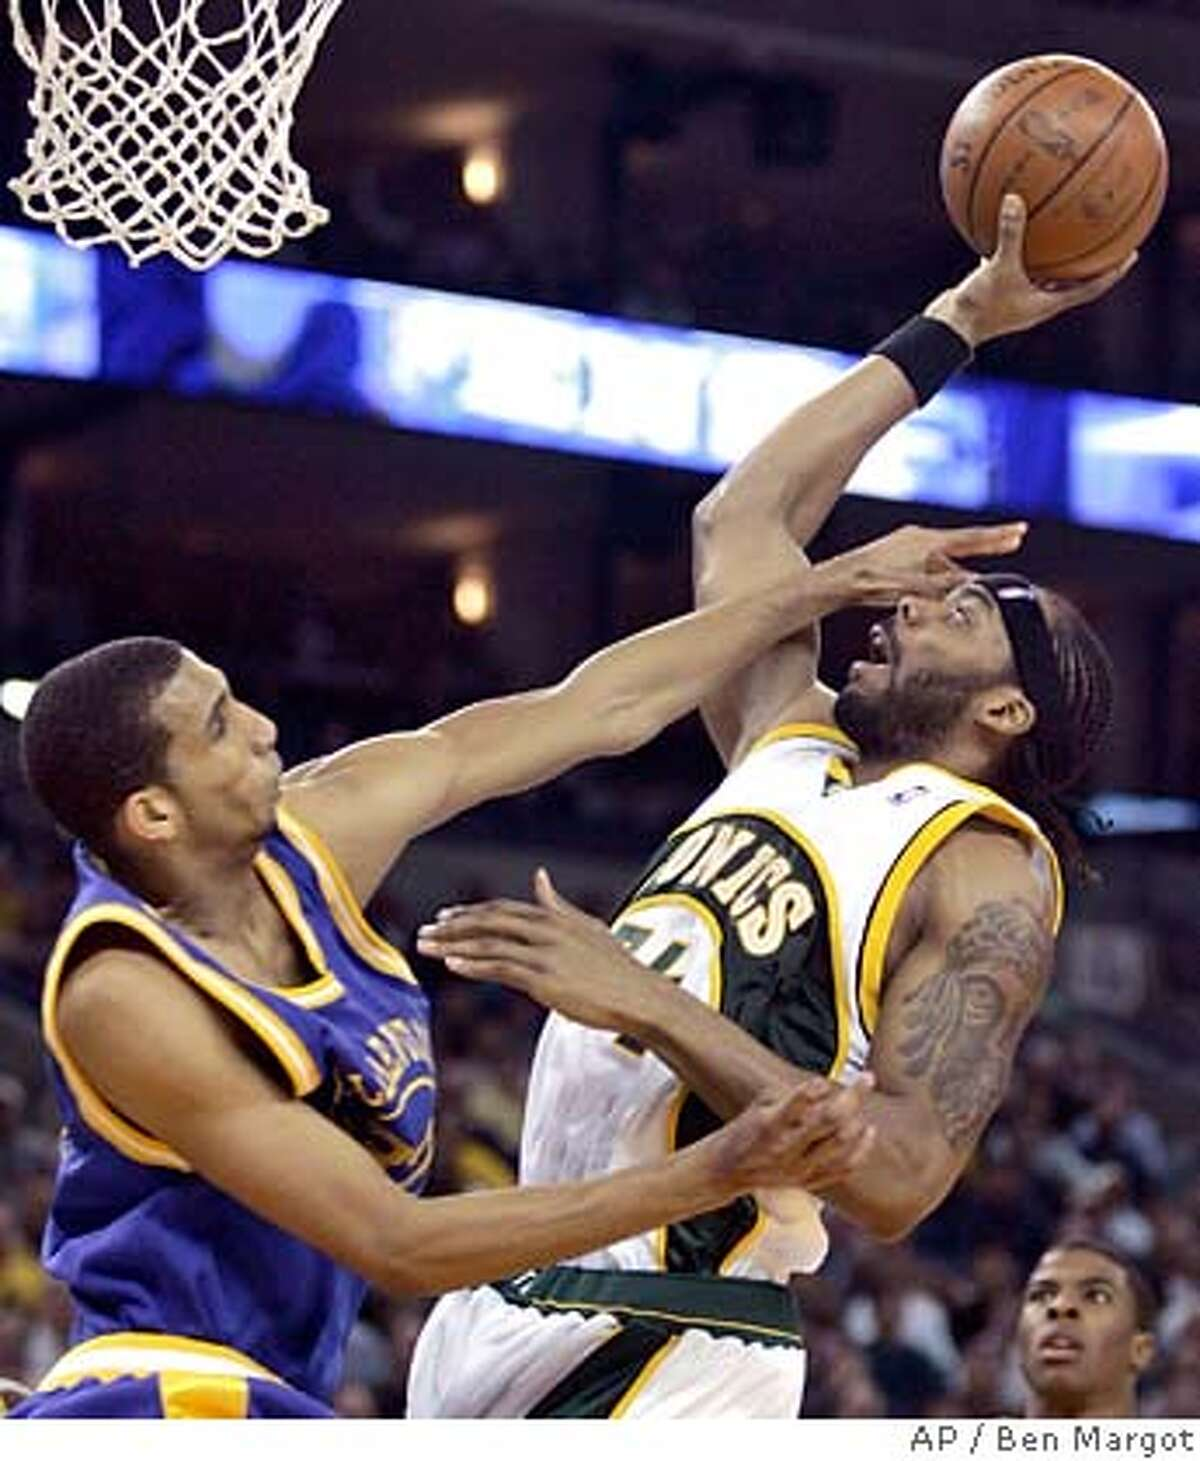 Golden State Warriors' Brandan Wright, left, defends against Seattle Supersonics' Chris Wilcox during the first half of an NBA basketball game Tuesday, Feb. 26, 2008, in Oakland, Calif. (AP Photo/Ben Margot) EFE OUT